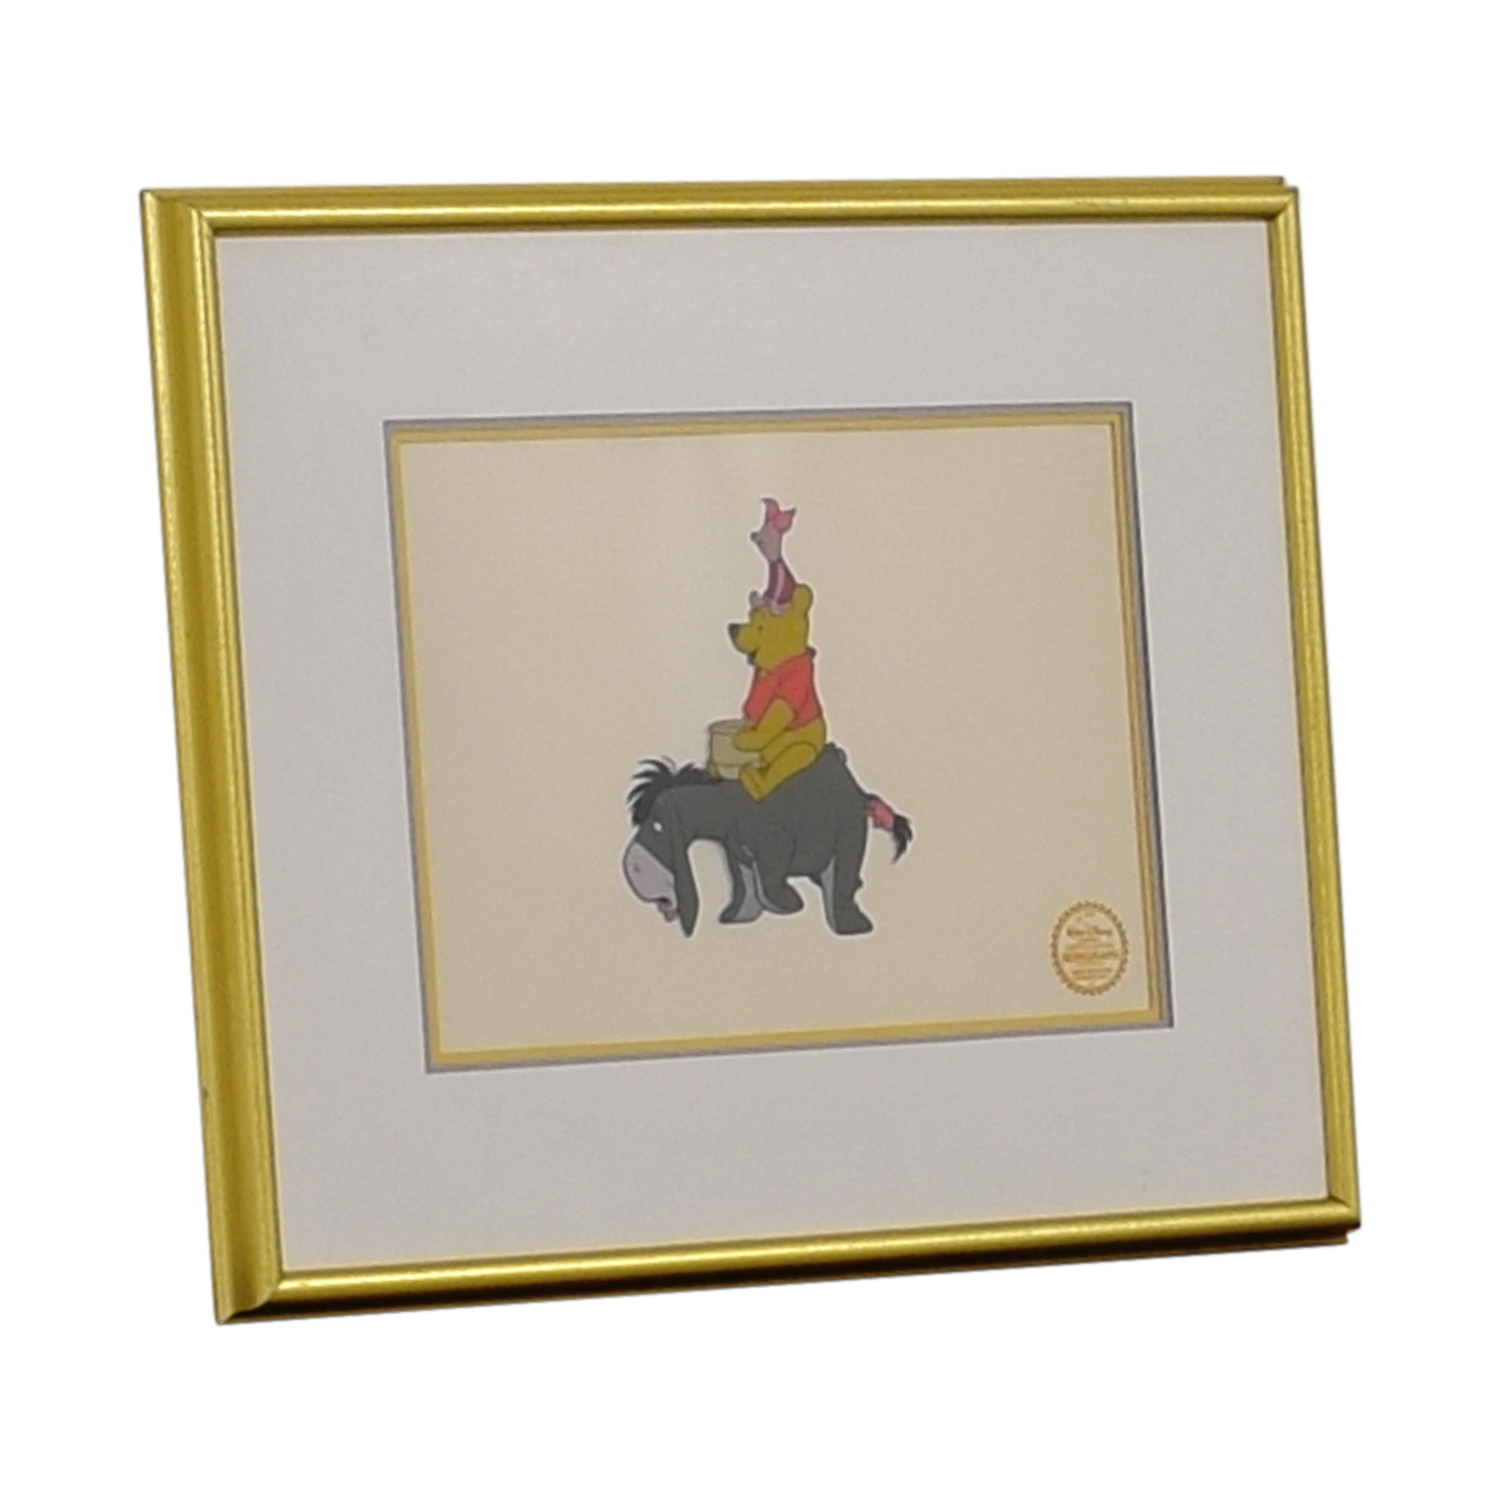 Disney Disney Winnie the Pooh Limited Edition Serigraph Framed discount